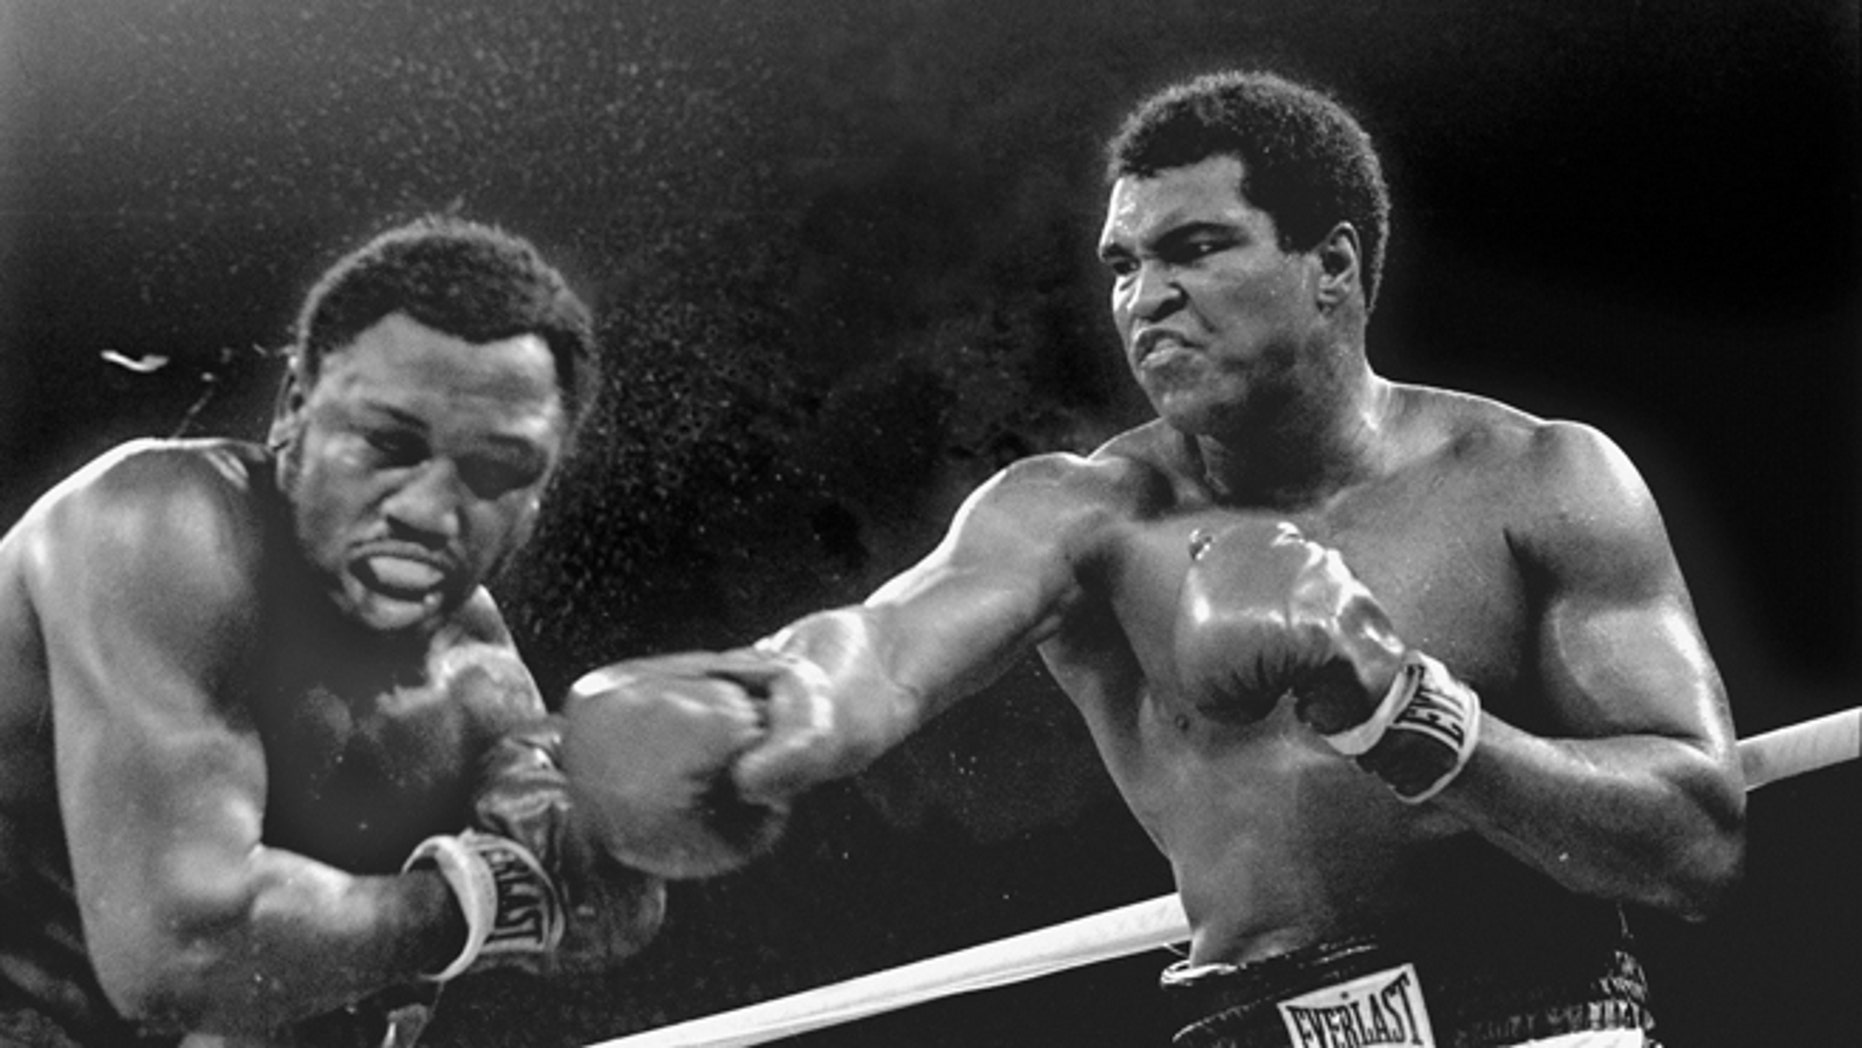 FILE-- Spray flies from the head of challenger Joe Frazier as heavyweight champion Muhammad Ali connects with a right in the ninth round of their title fight in Manila, Philippines, in this Oct. 1, 1975 file photo.  Ali won the fight on a decision to retain the title.  (AP Photo/Mitsunori Chigita)